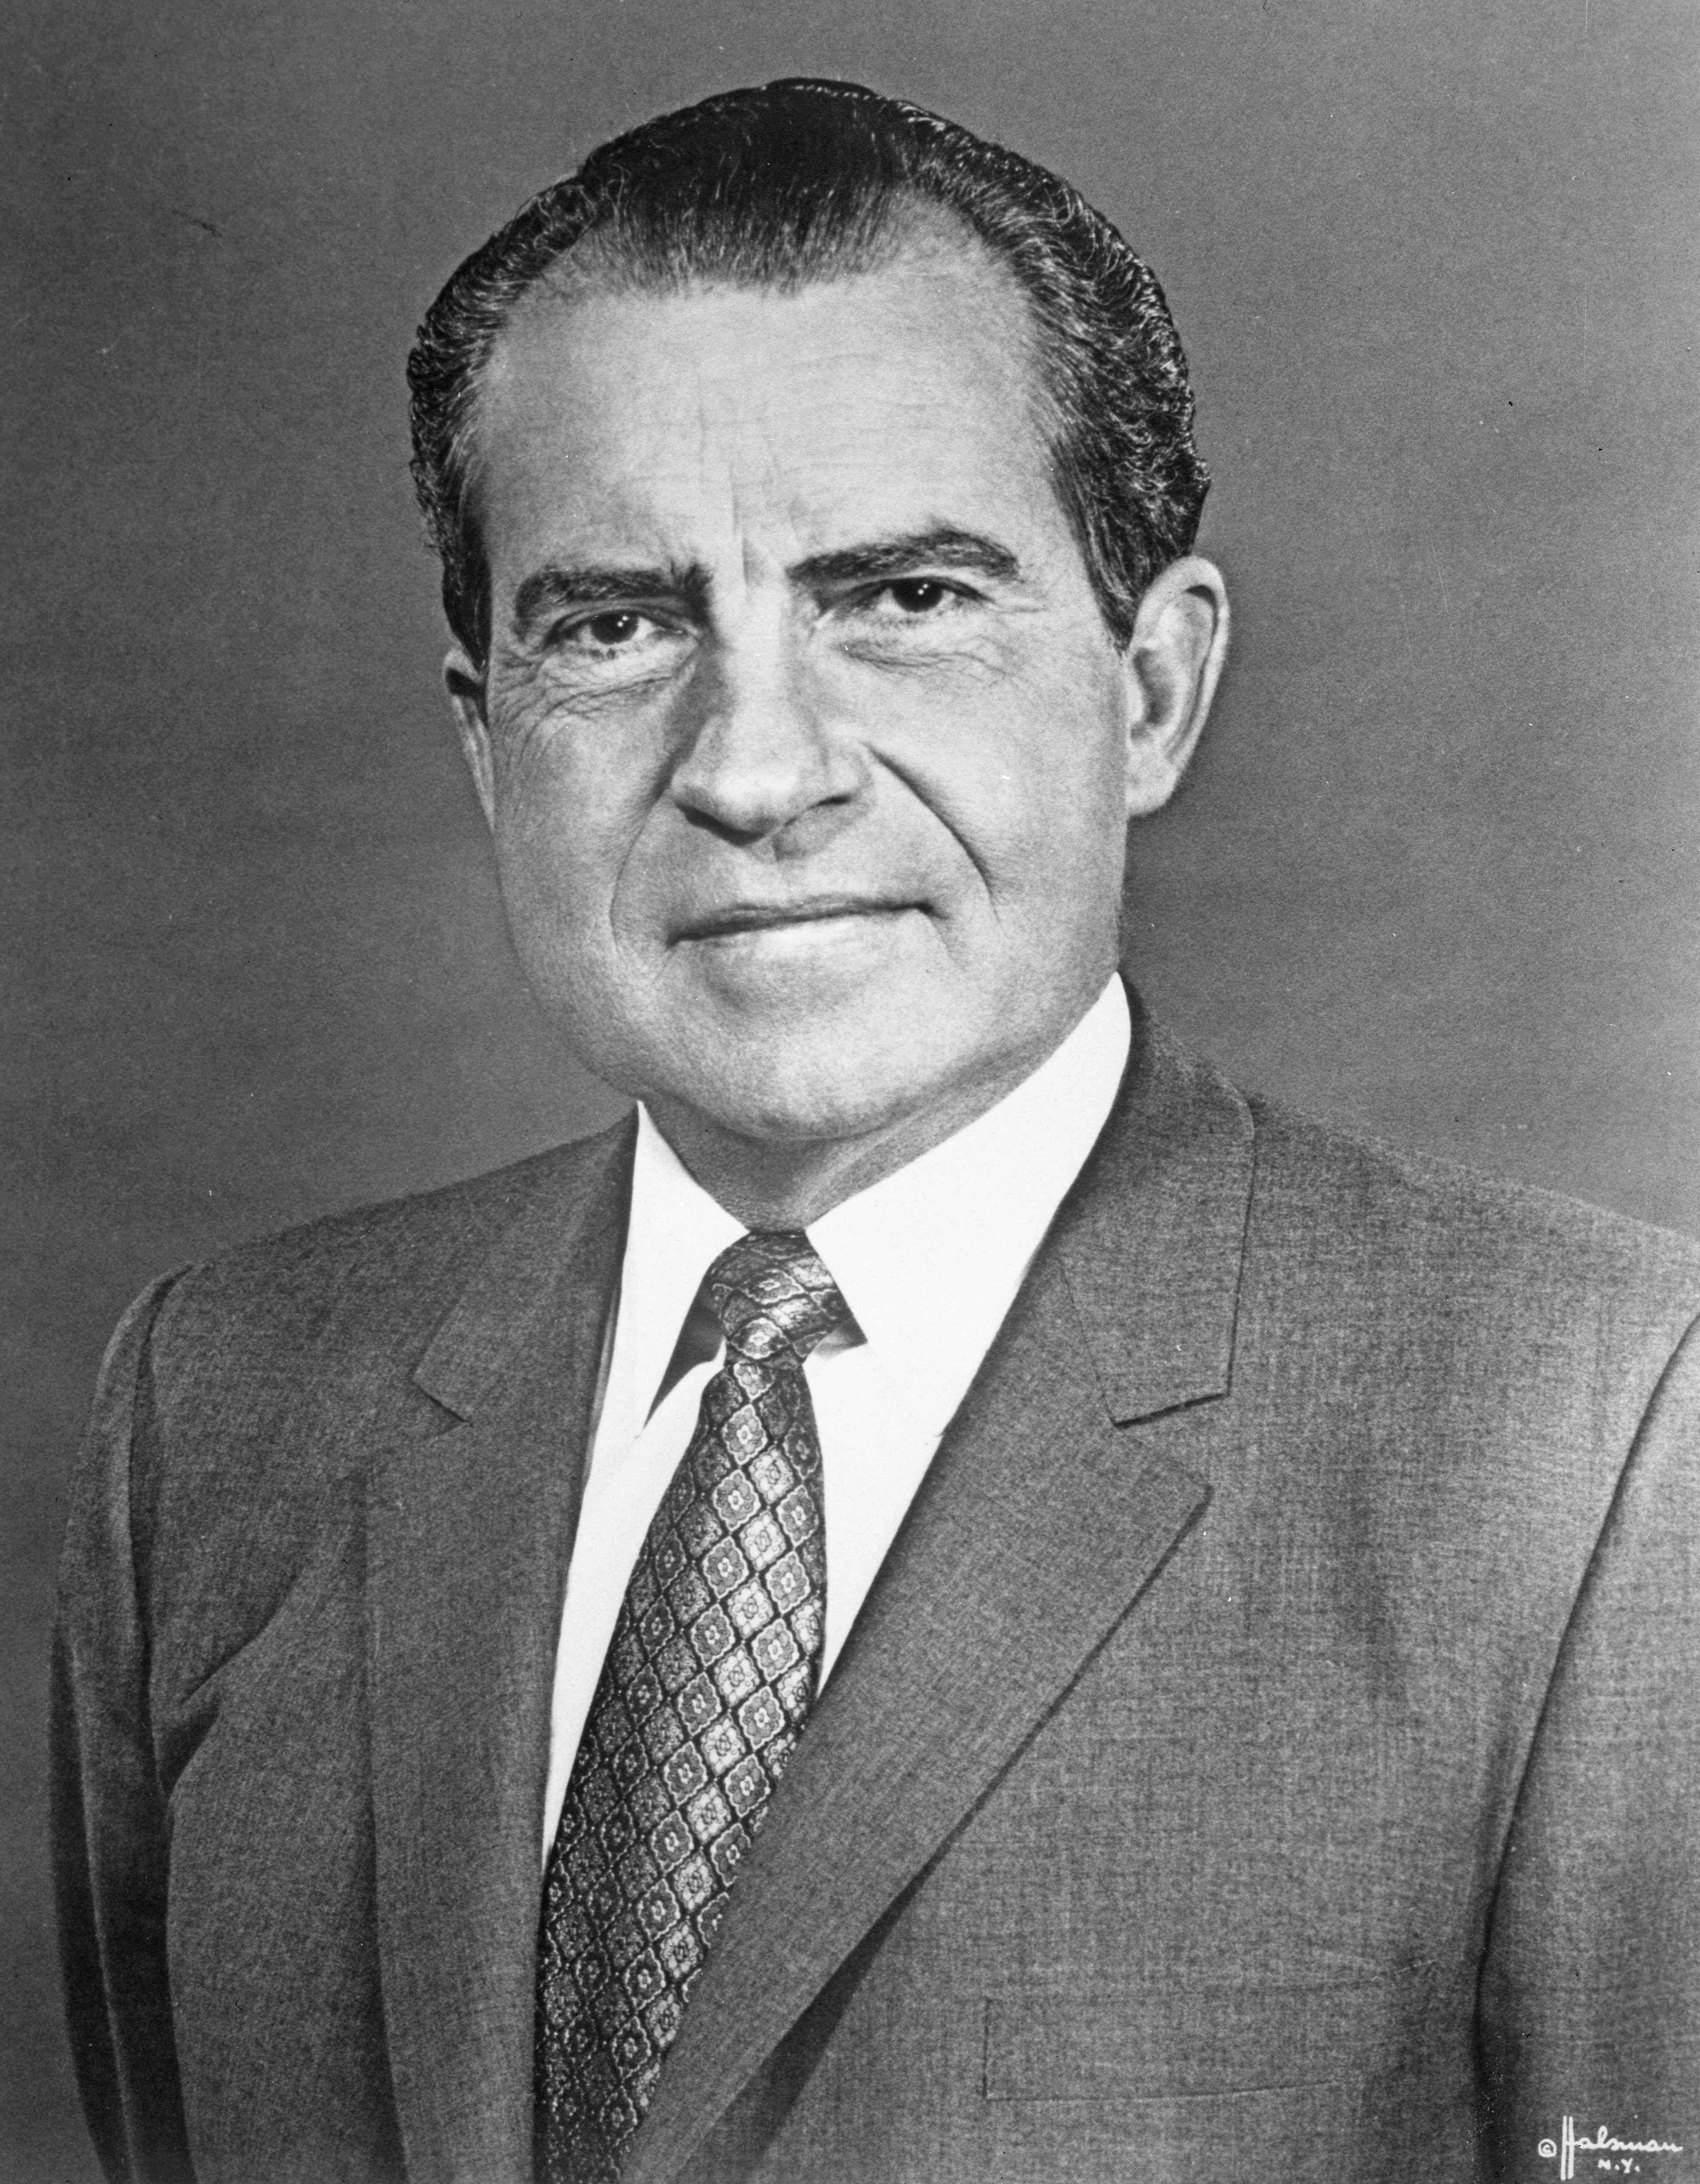 the life and times of the 37th president of the united states richard milhous nixon Richard milhous nixon, 37th president of the united states, is born on this day in california the son of quaker parents, nixon grew up in the southern california city of yorba linda early on he proved himself to be a stellar student, attending whittier college and graduating.